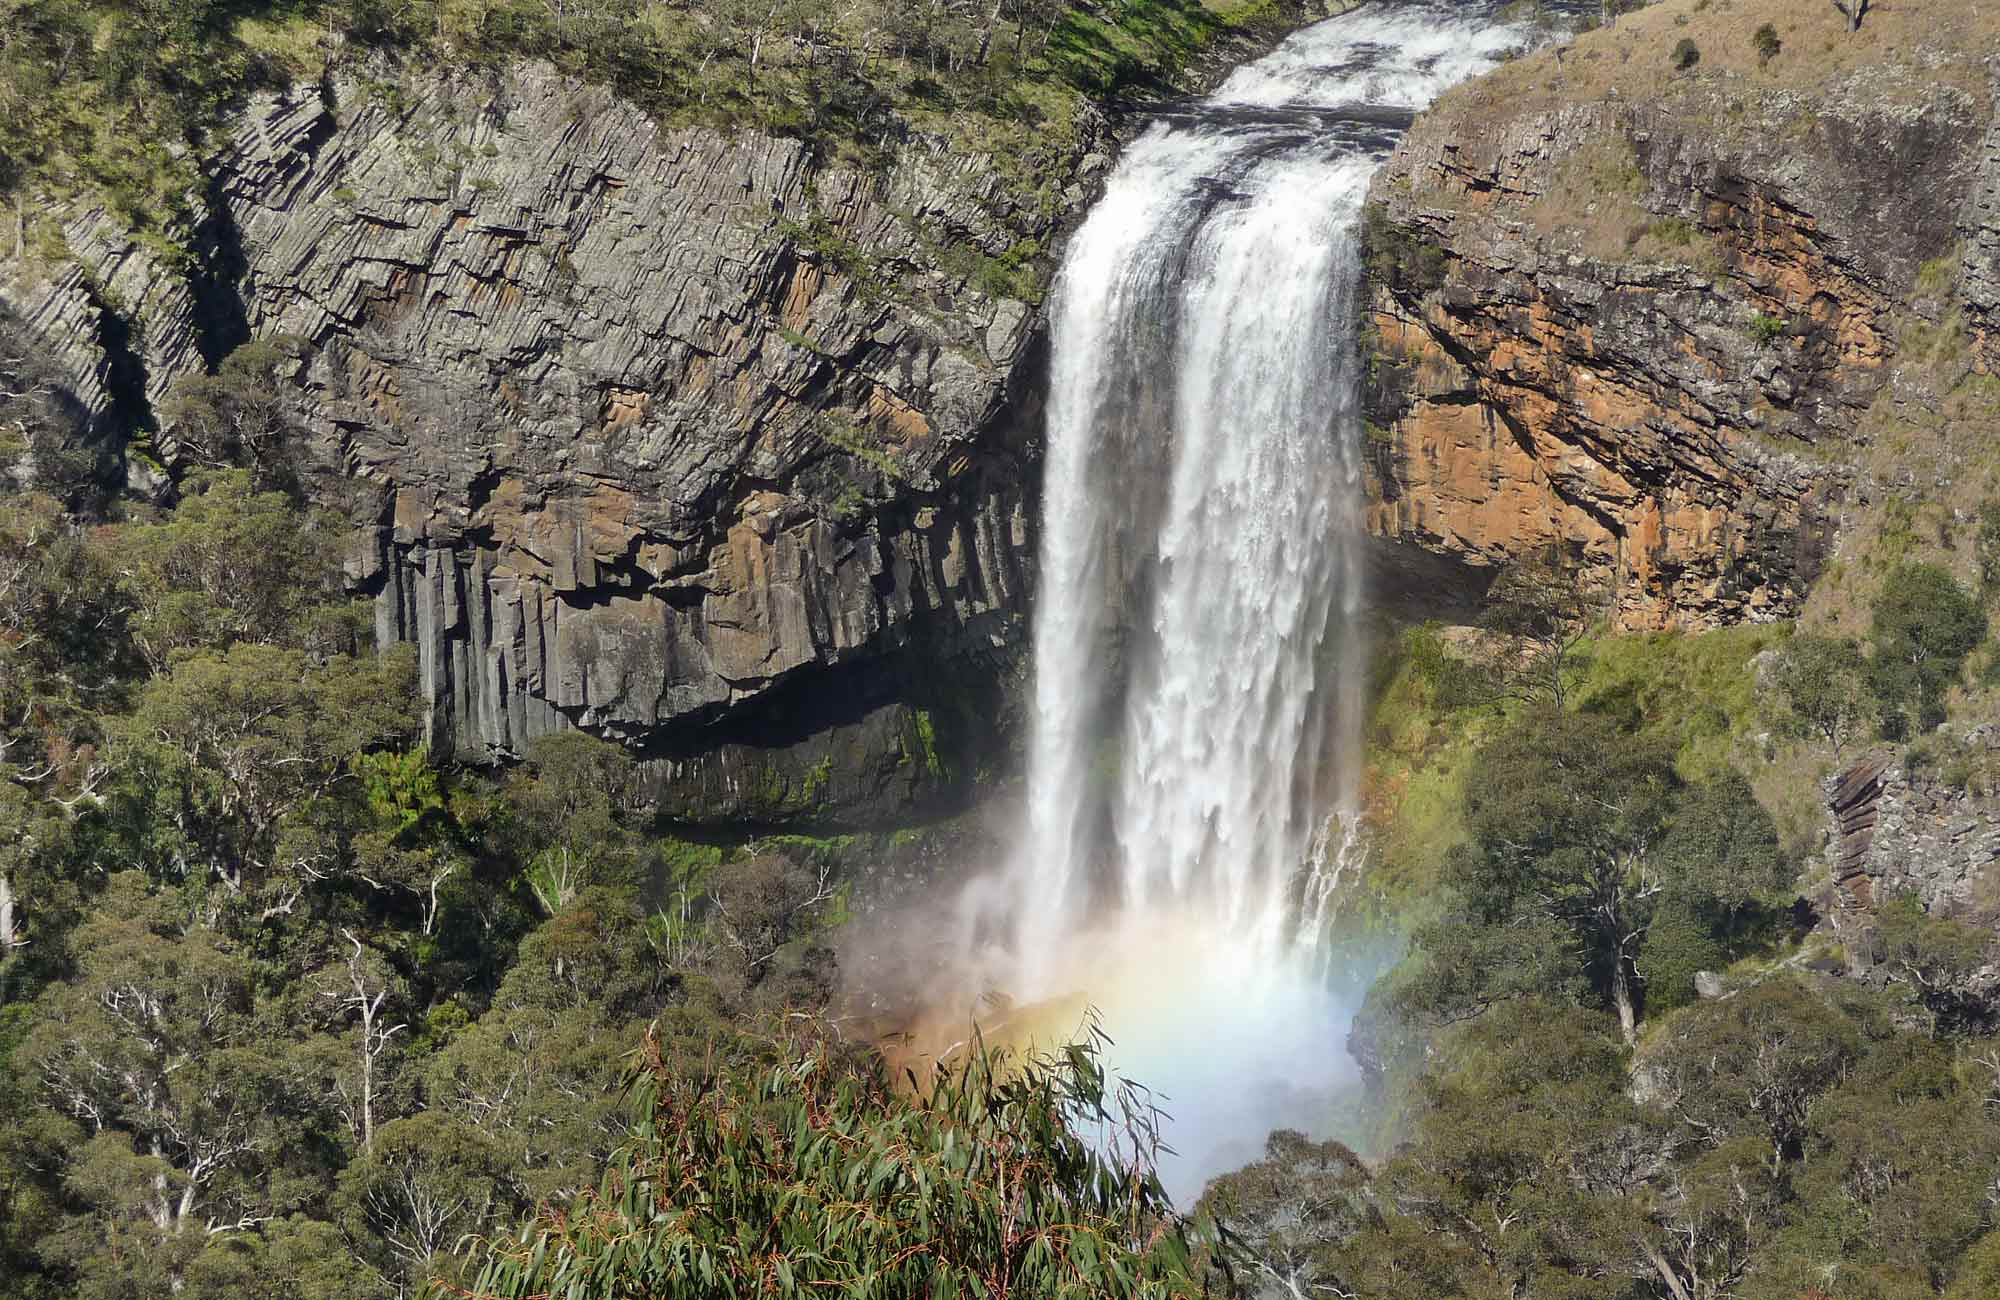 Waterwall Way scenic drive, Dorrigo National Park. Photo: Barbara Webster